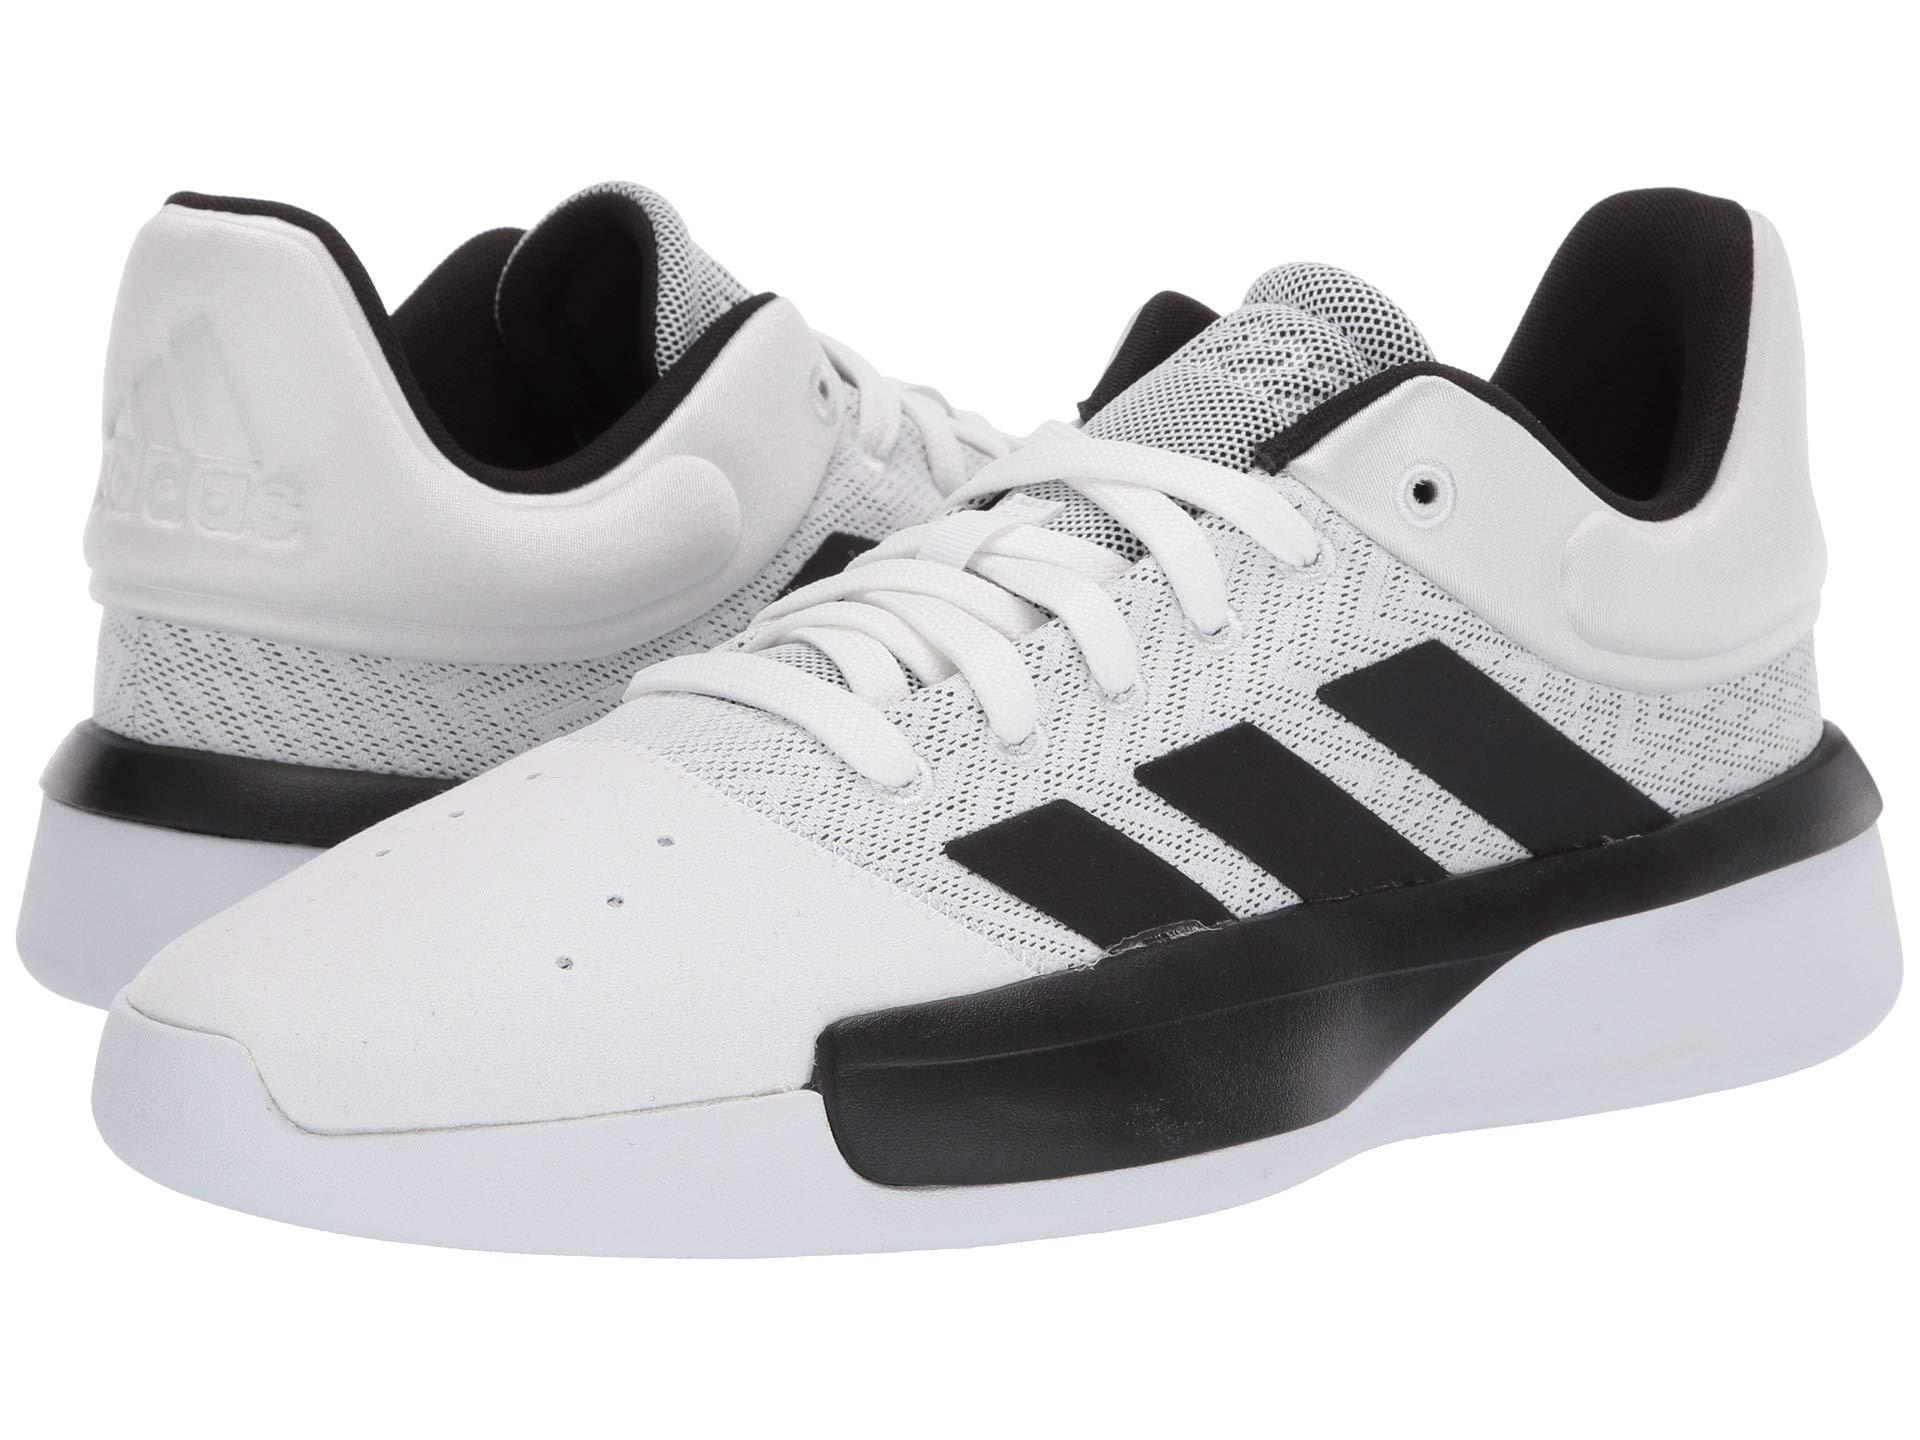 innovative design a6f4b a4286 adidas. Pro Adversary Low 2019 (footwear ...